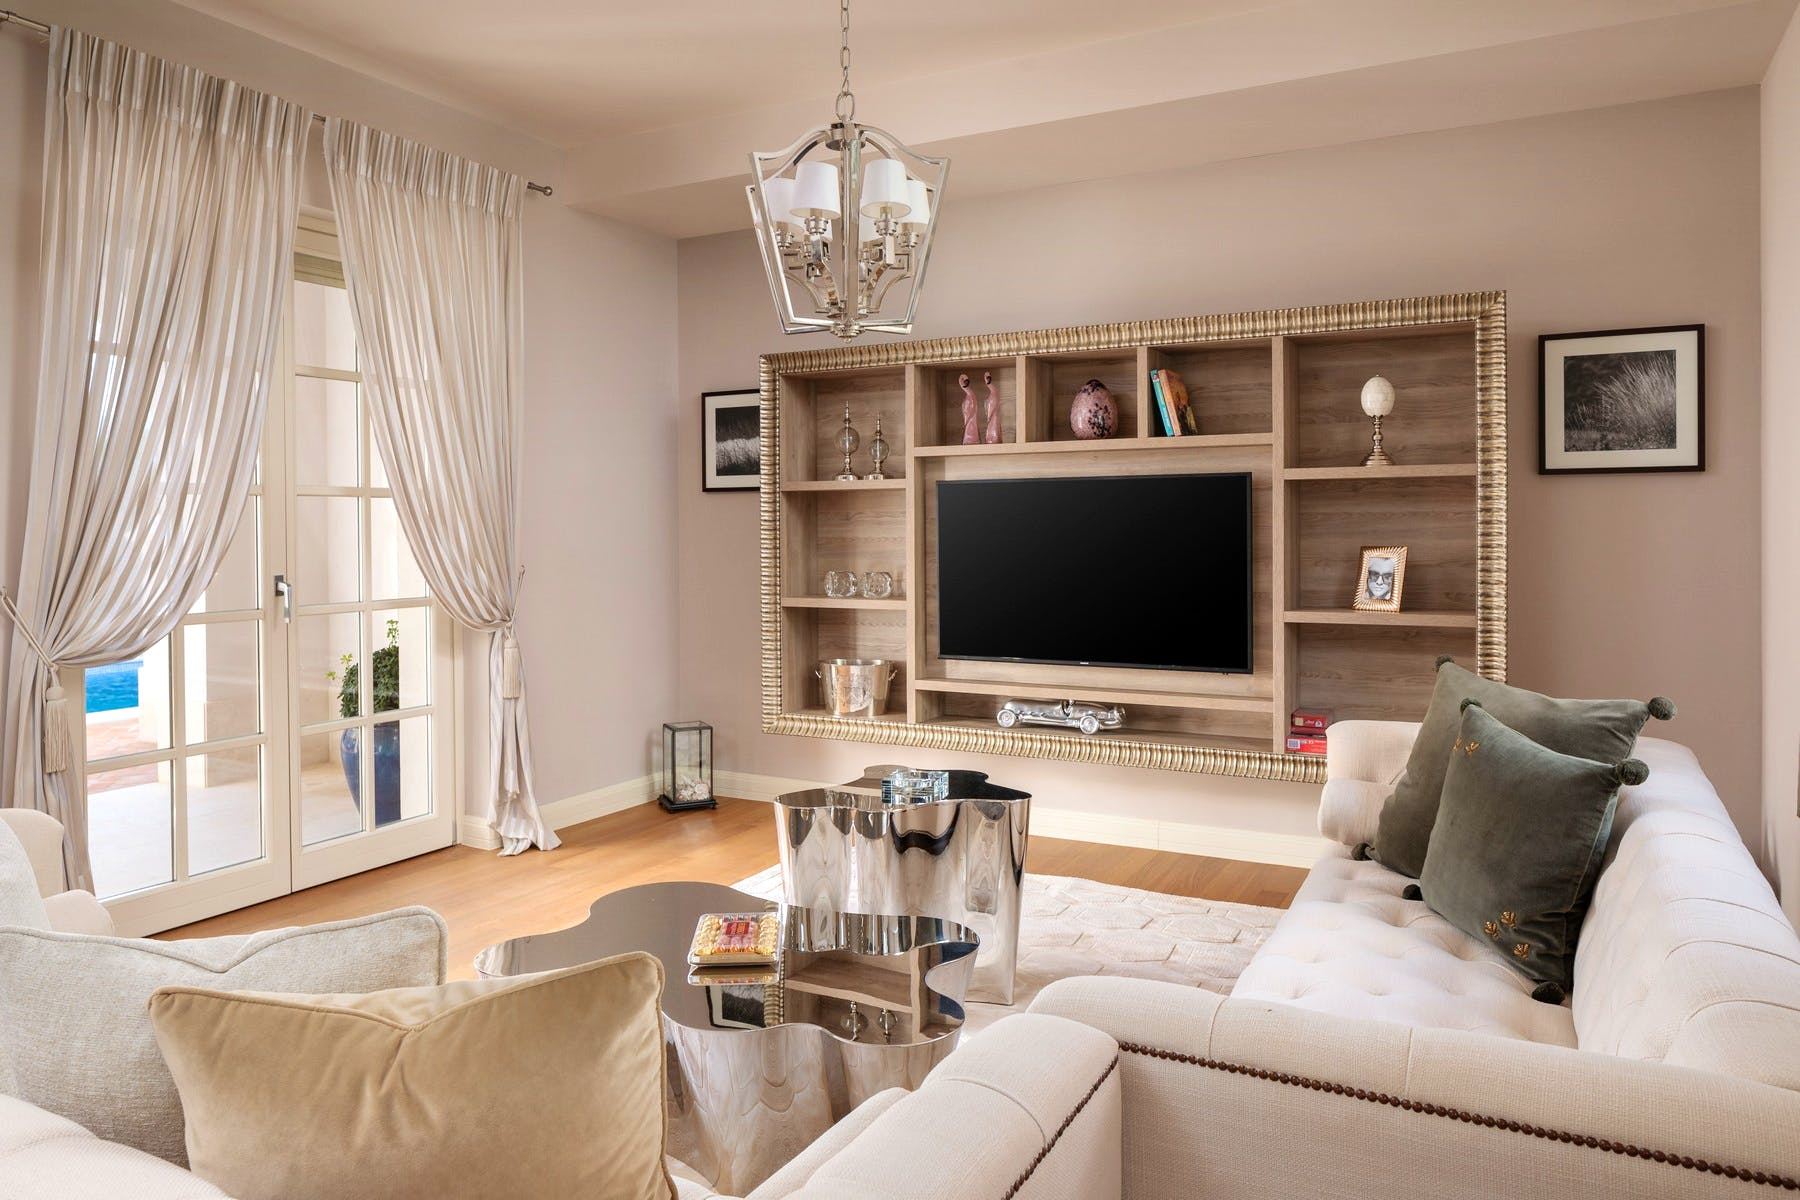 Living room with direct access to the garden area